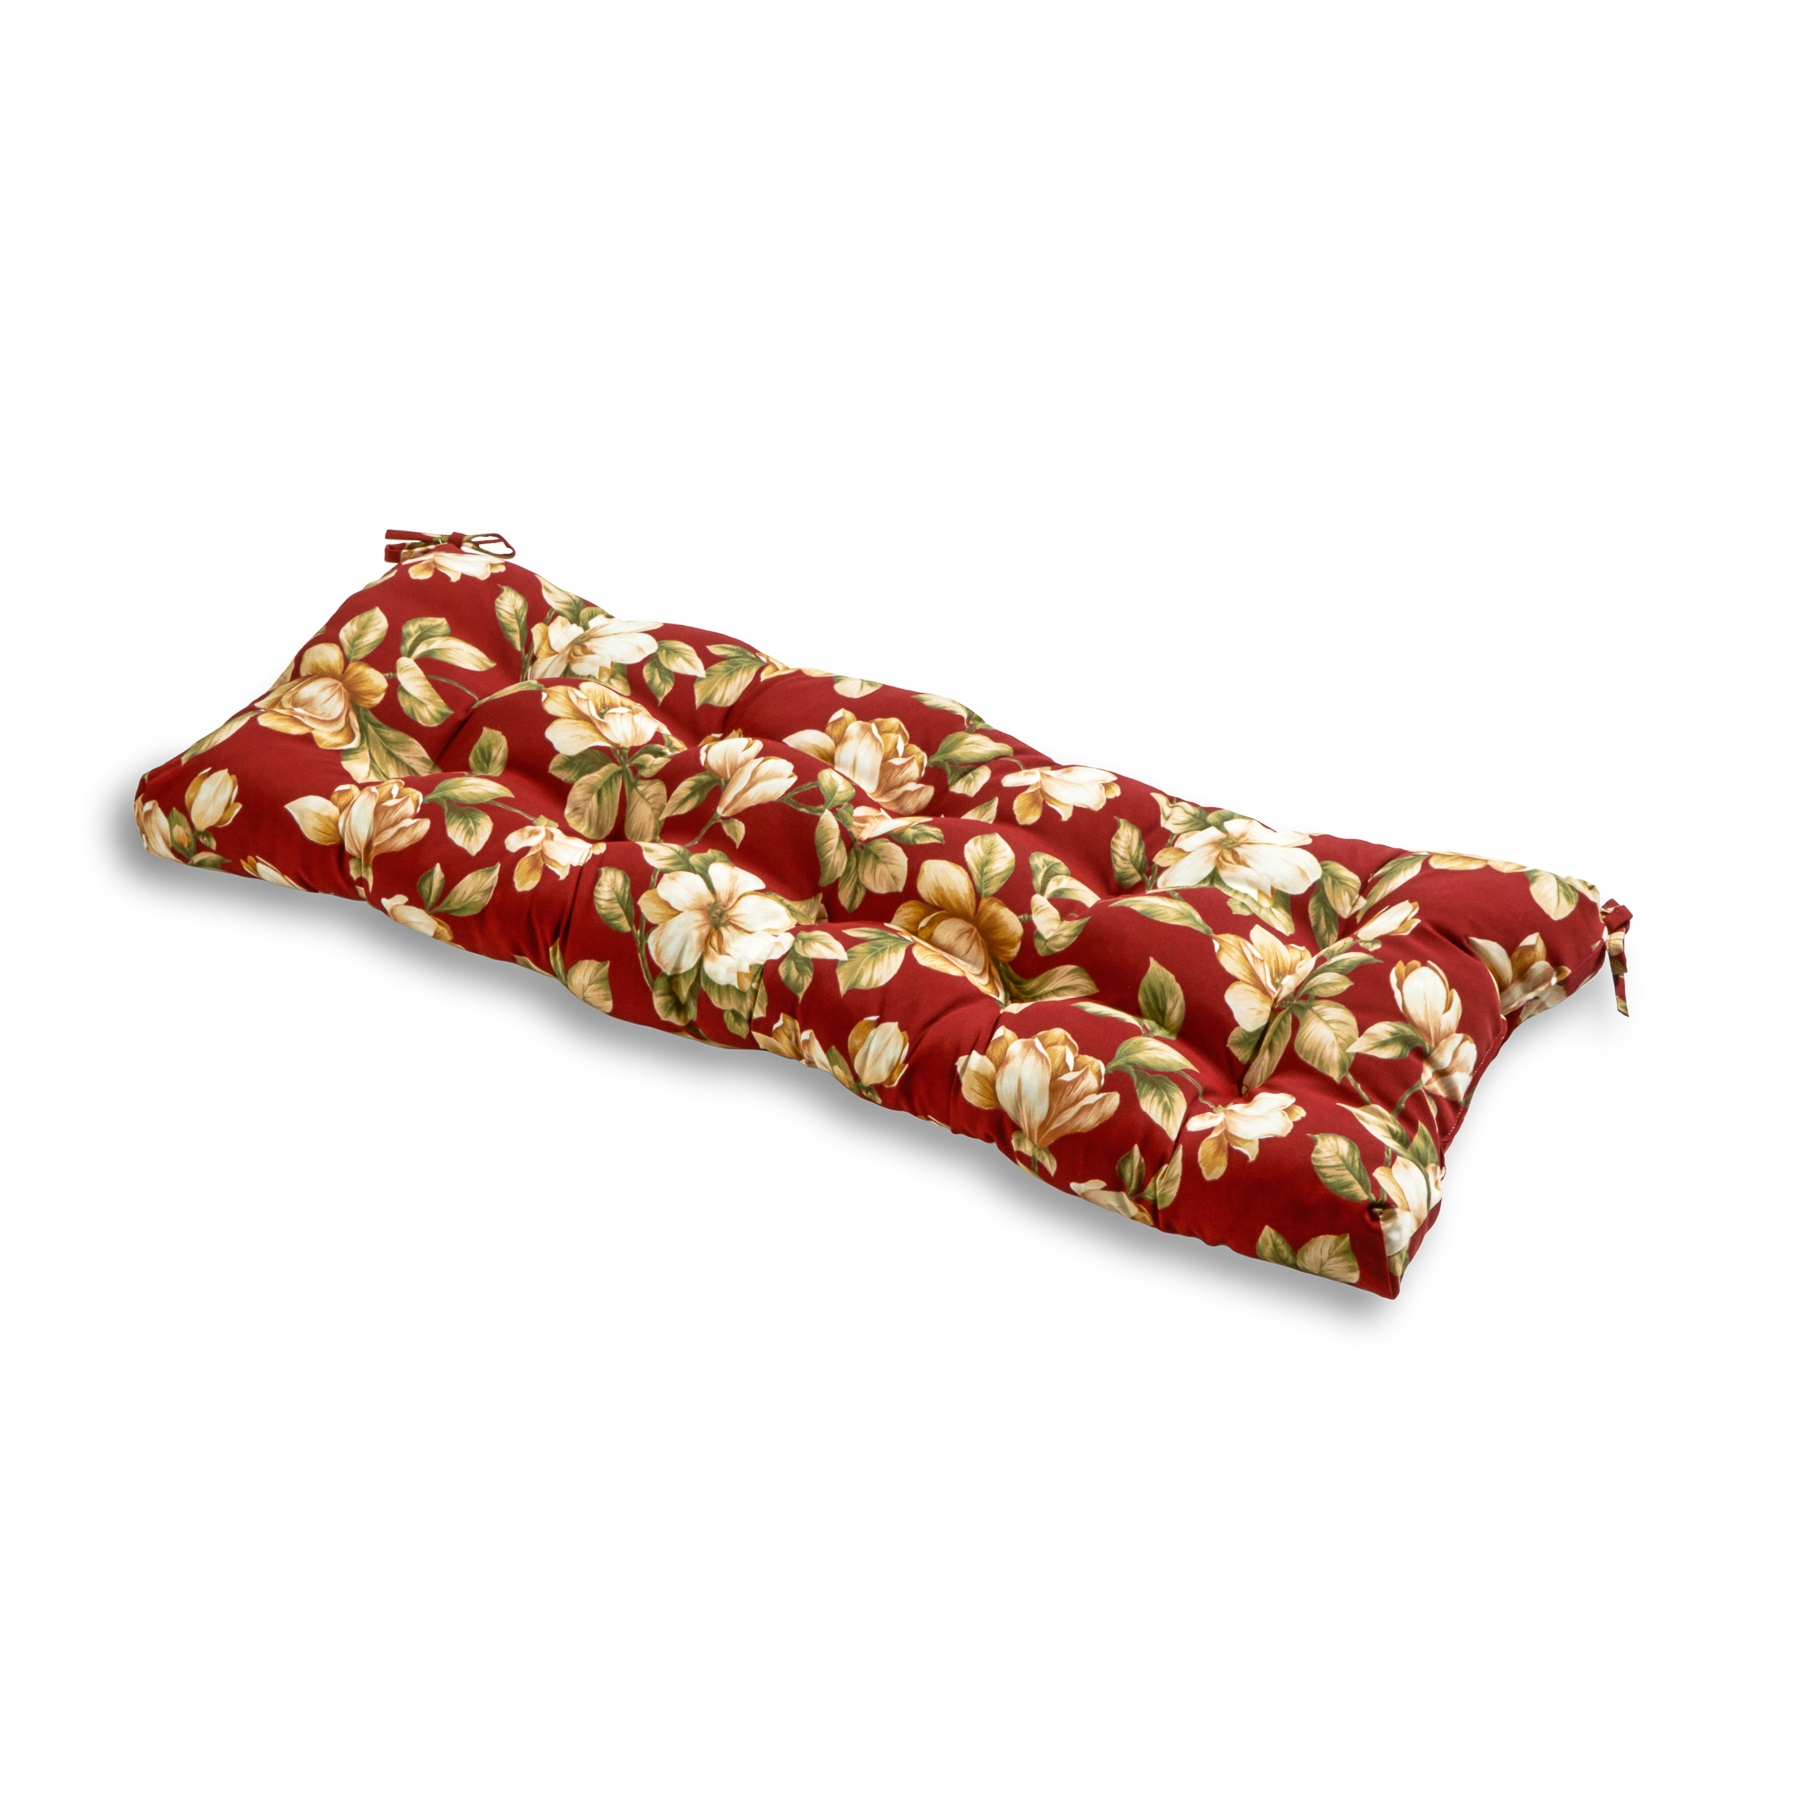 Roma Floral 51 x 18 in. Outdoor Bench Cushion